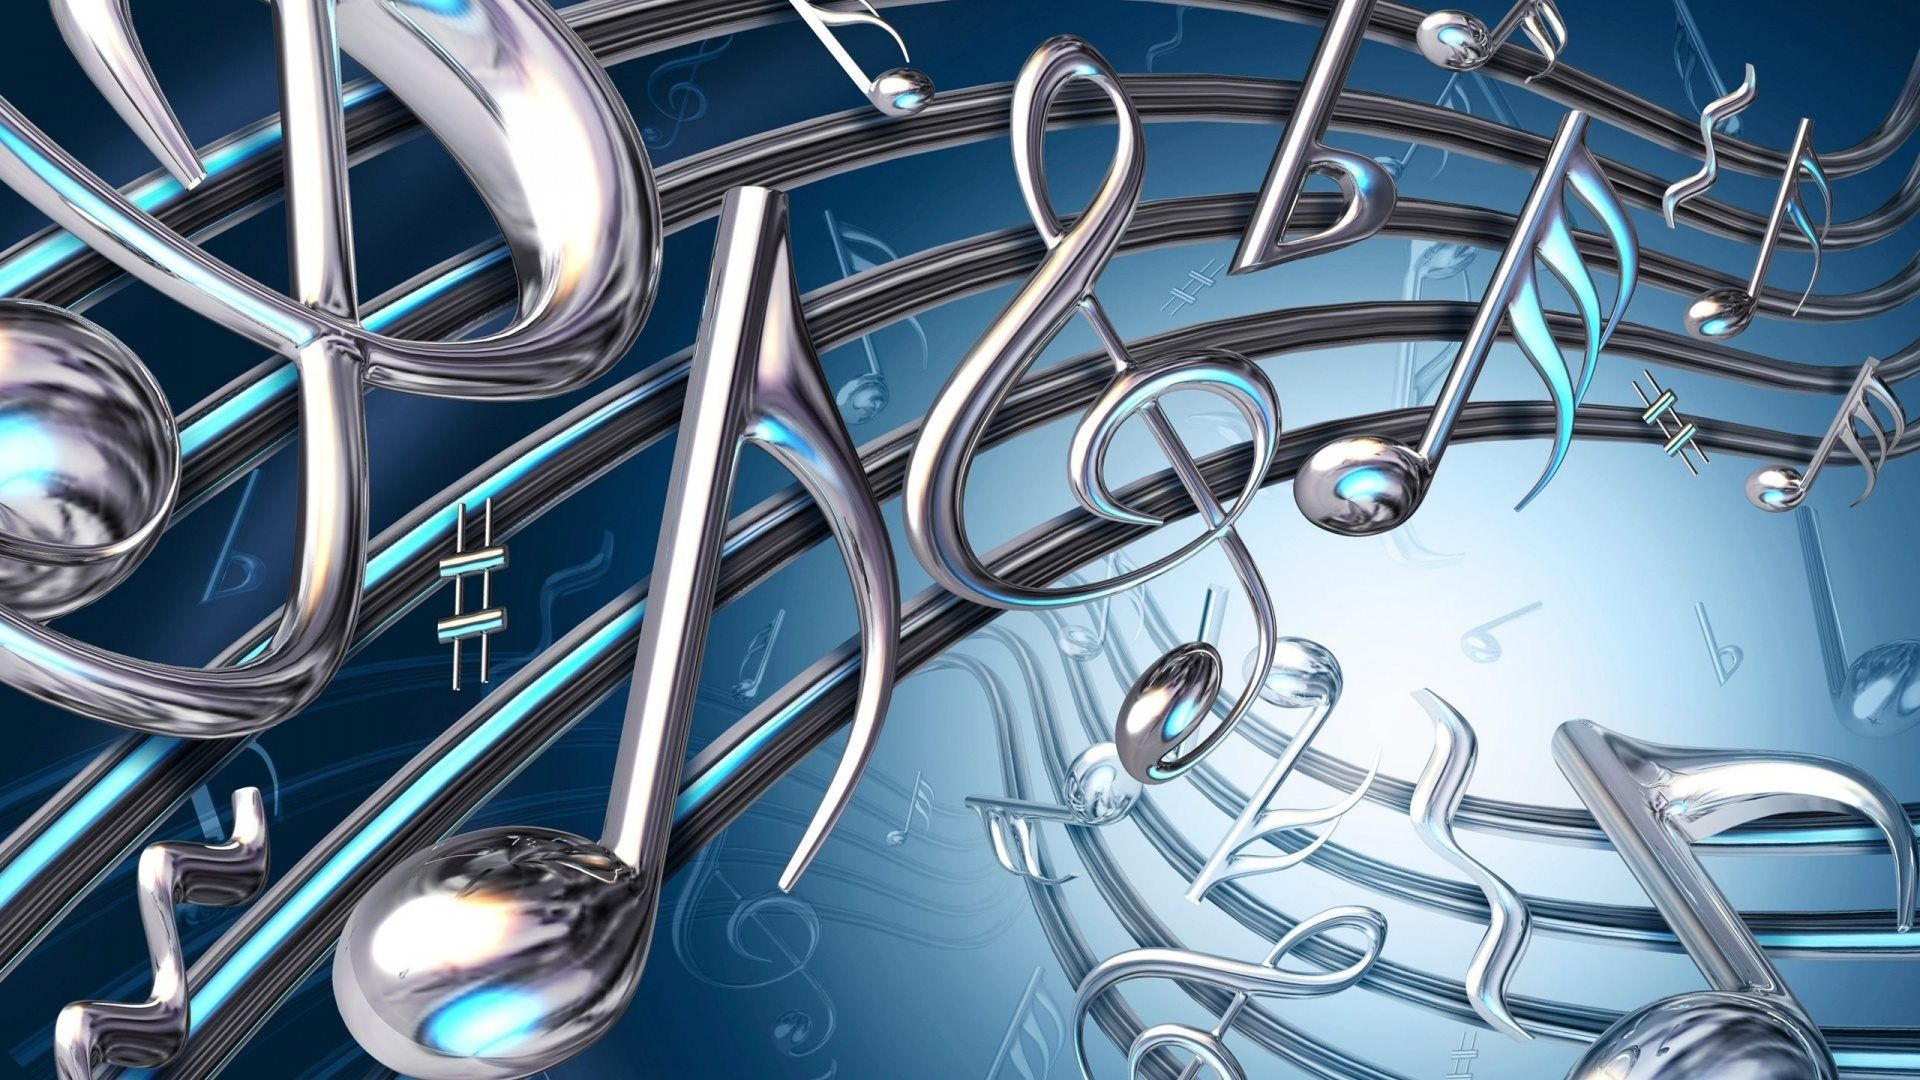 Preview Of 1080p Hd 3d Colorful Music Notes Wallpaper Music